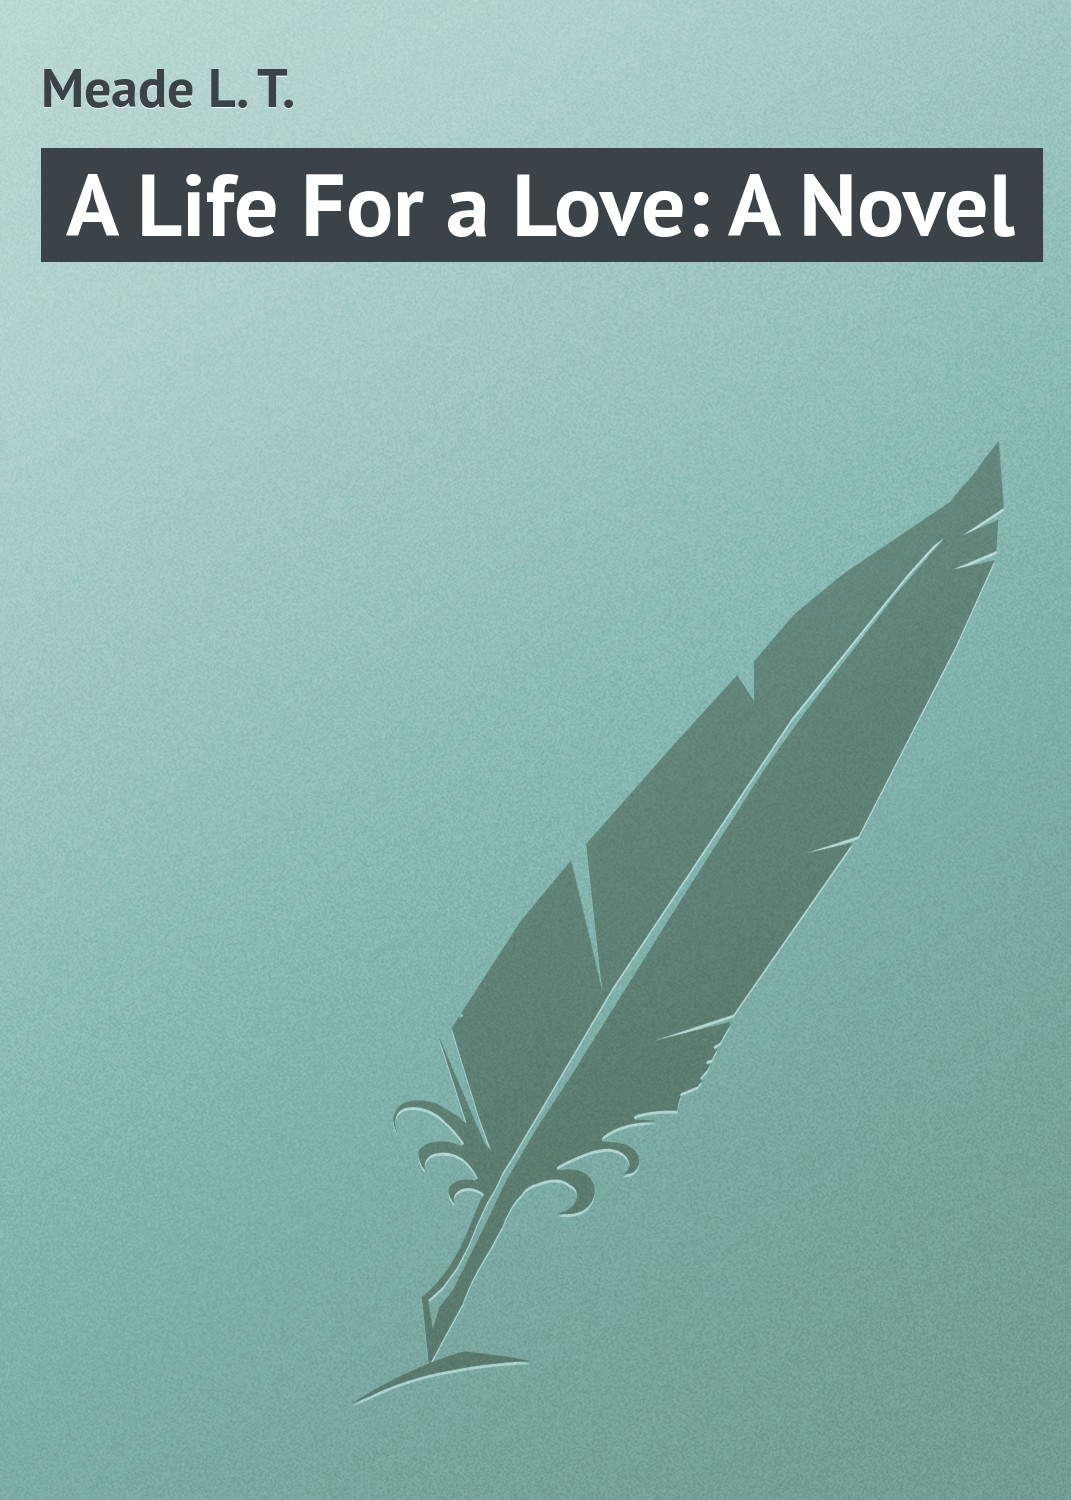 Meade L. T. A Life For a Love: A Novel l wagner martin toni morrison a literary life